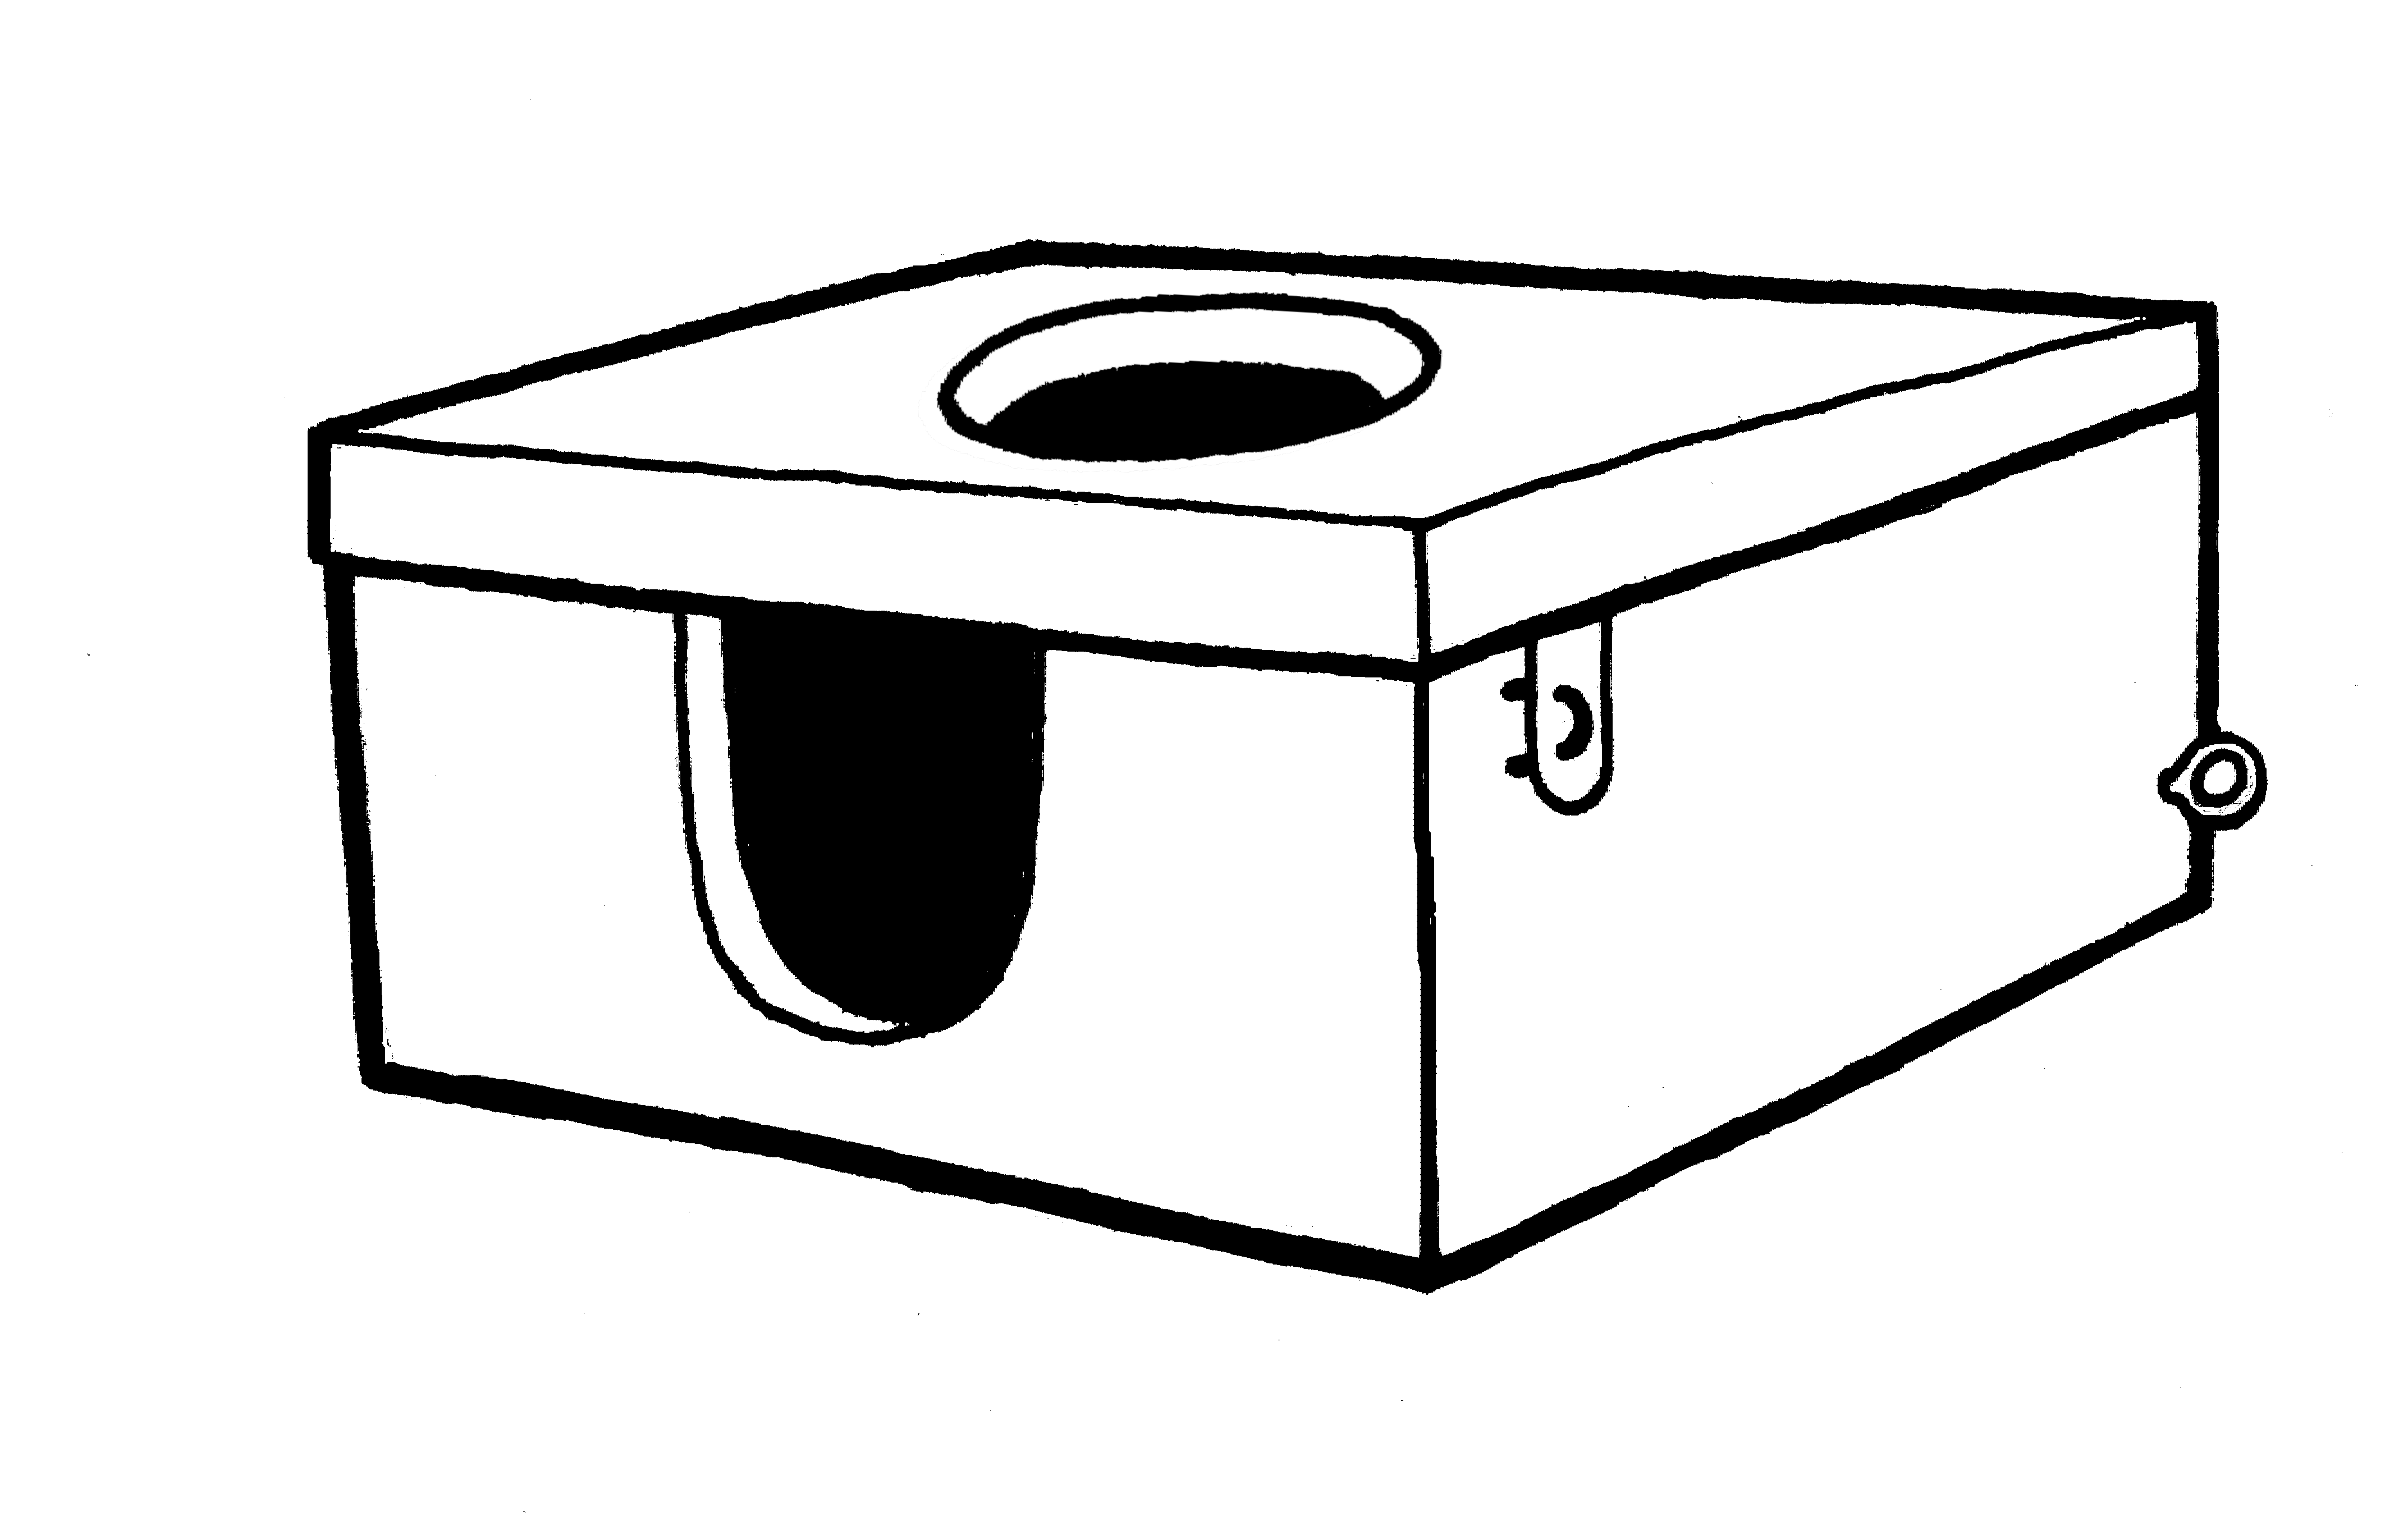 Dateismotherbox Drawing Bwpng Wikipedia